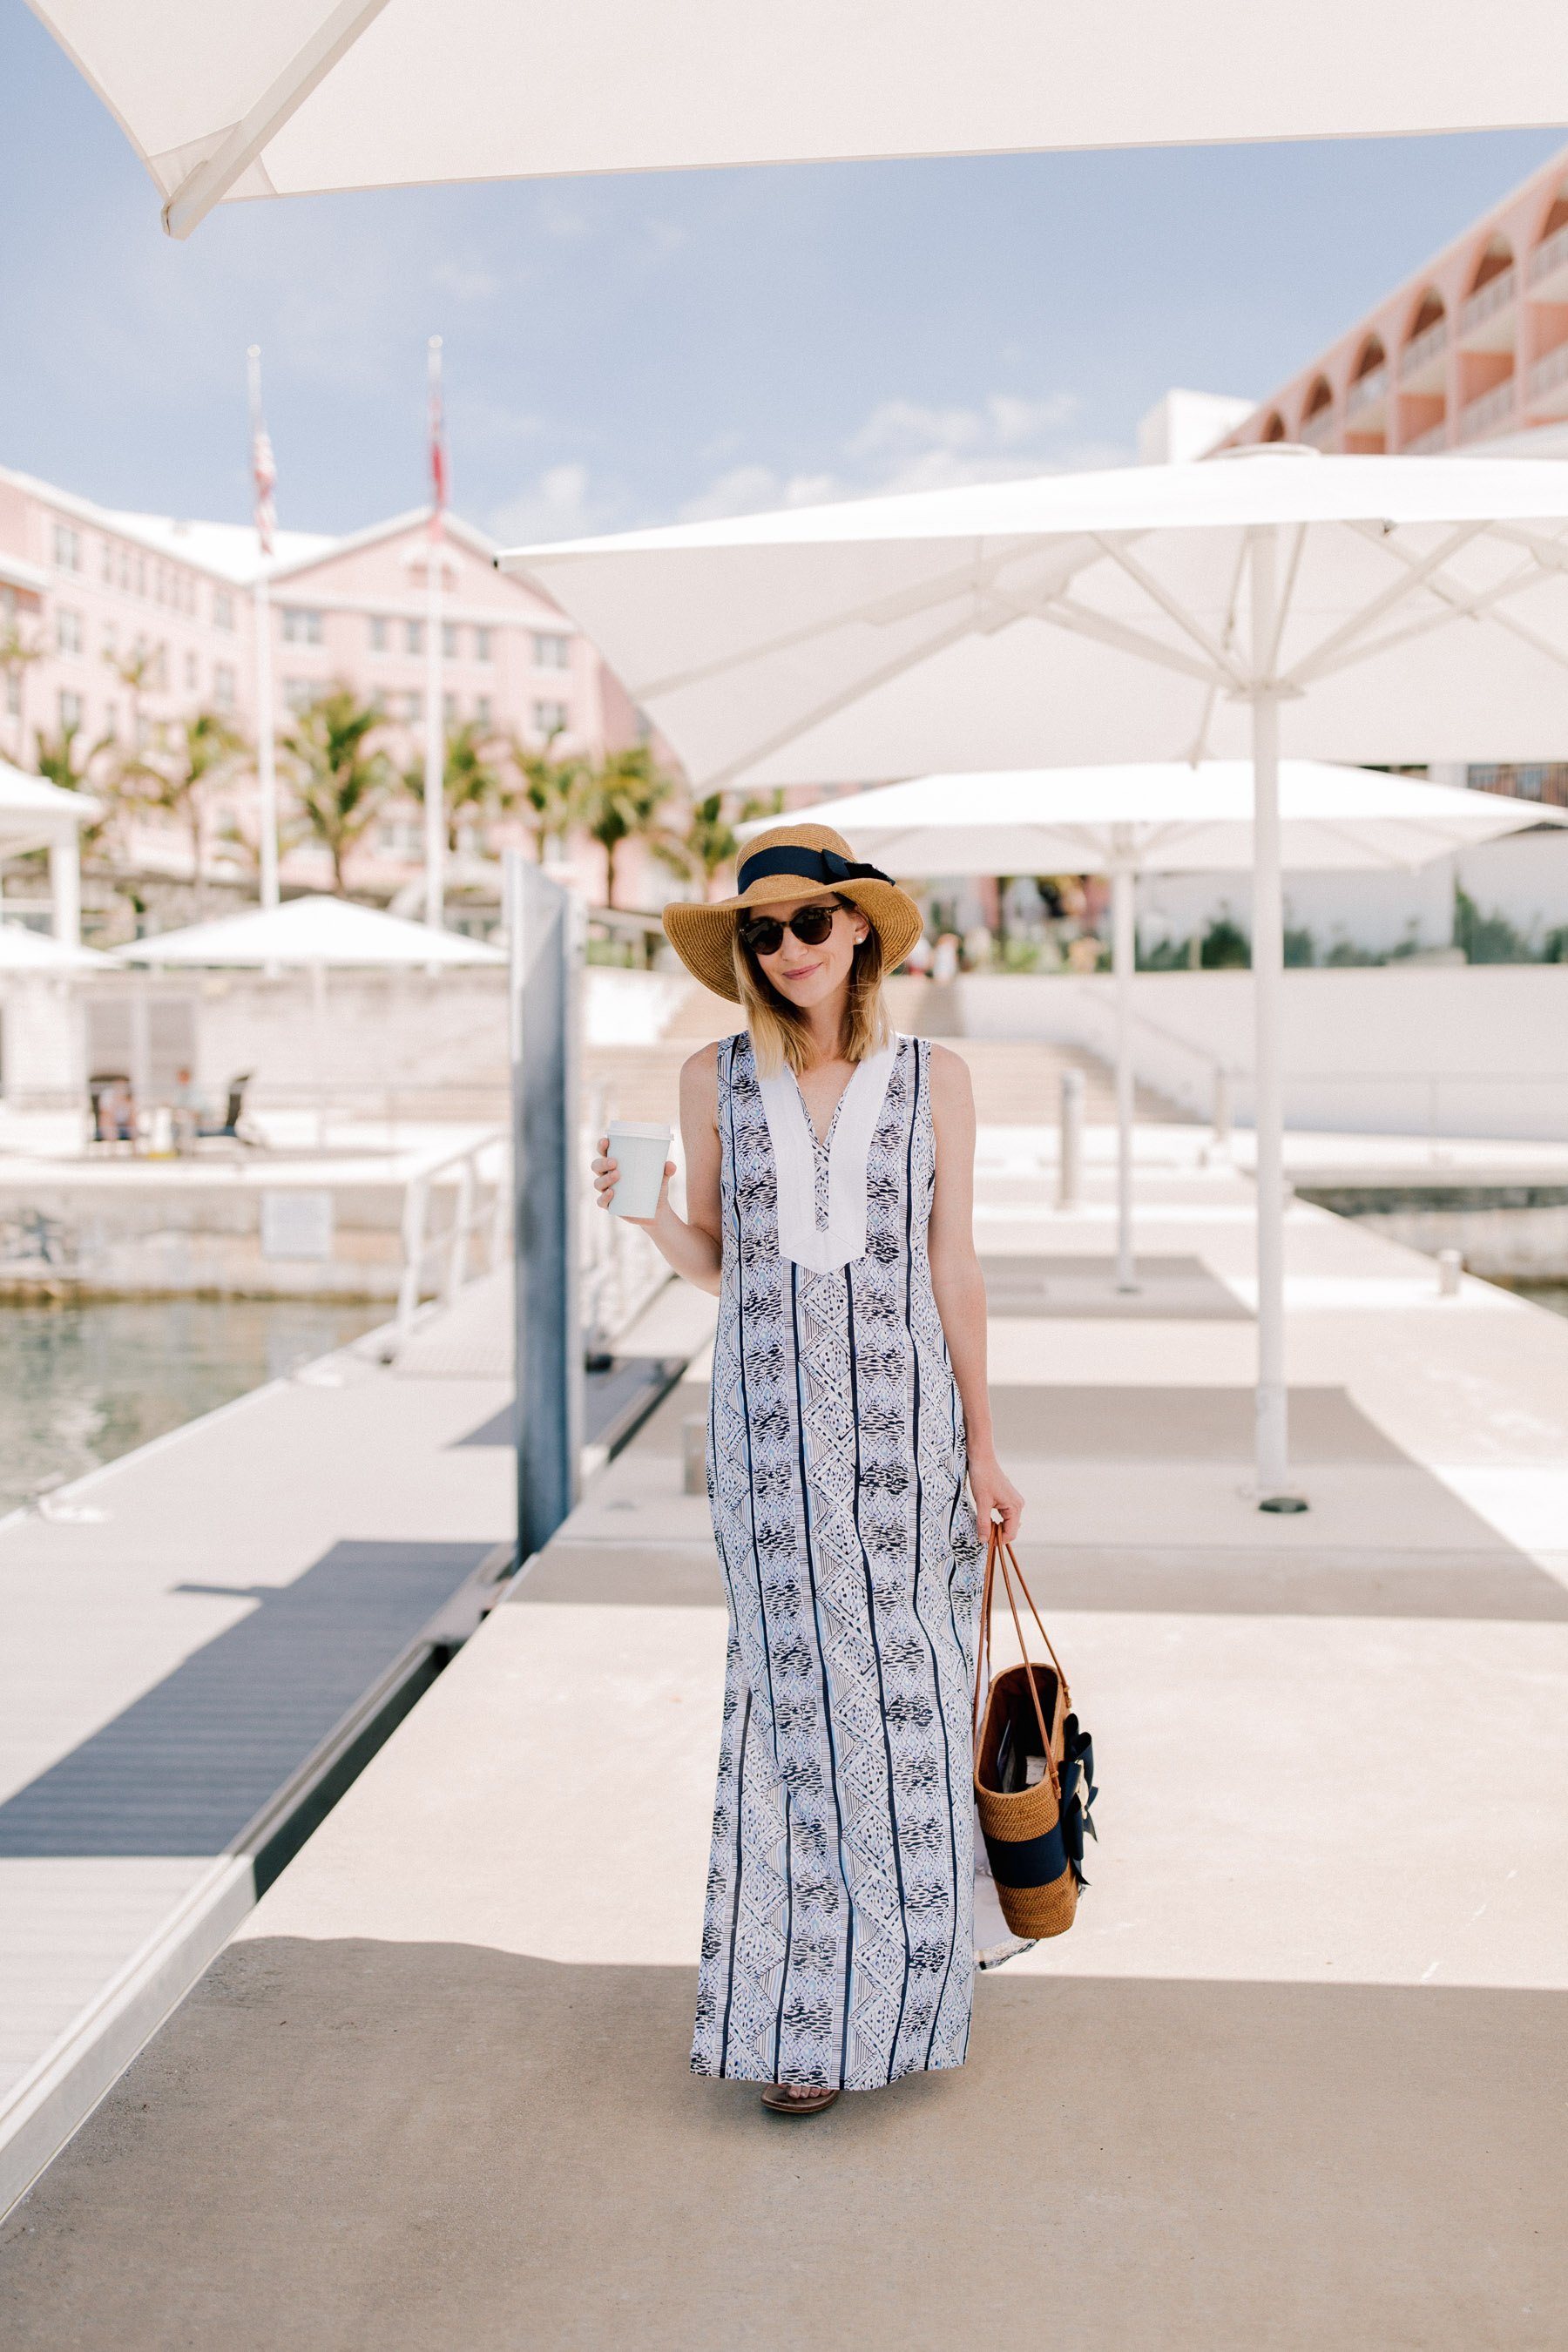 Tuckernuck - MAXI TUNIC DRESS BY SAIL TO SABLE